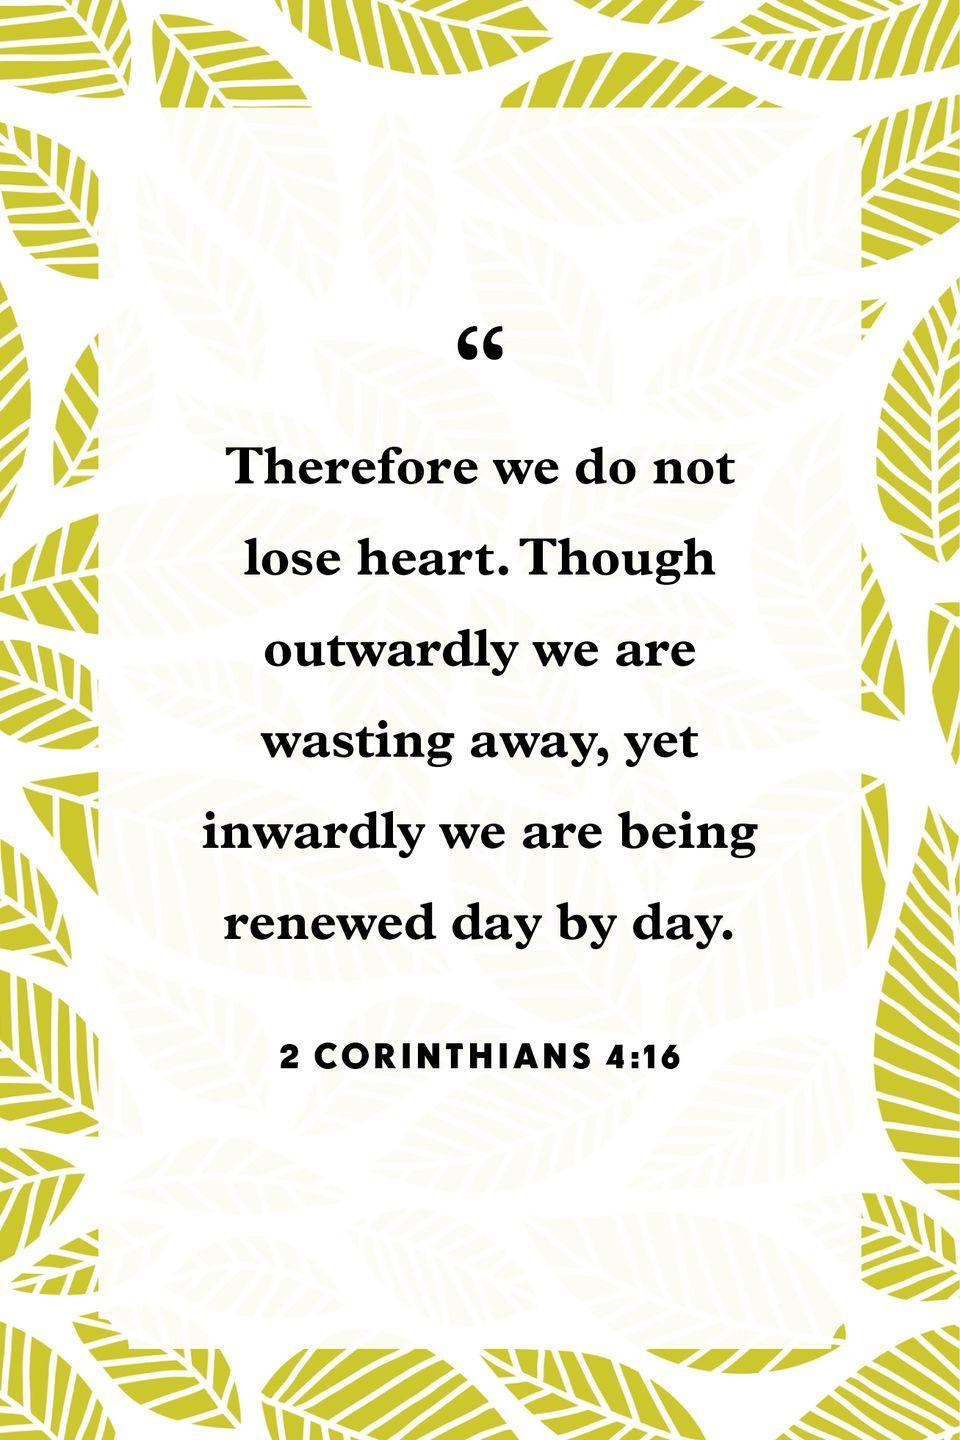 "<p>""Therefore we do not lose heart. Though outwardly we are wasting away, yet inwardly we are being renewed day by day.""</p>"